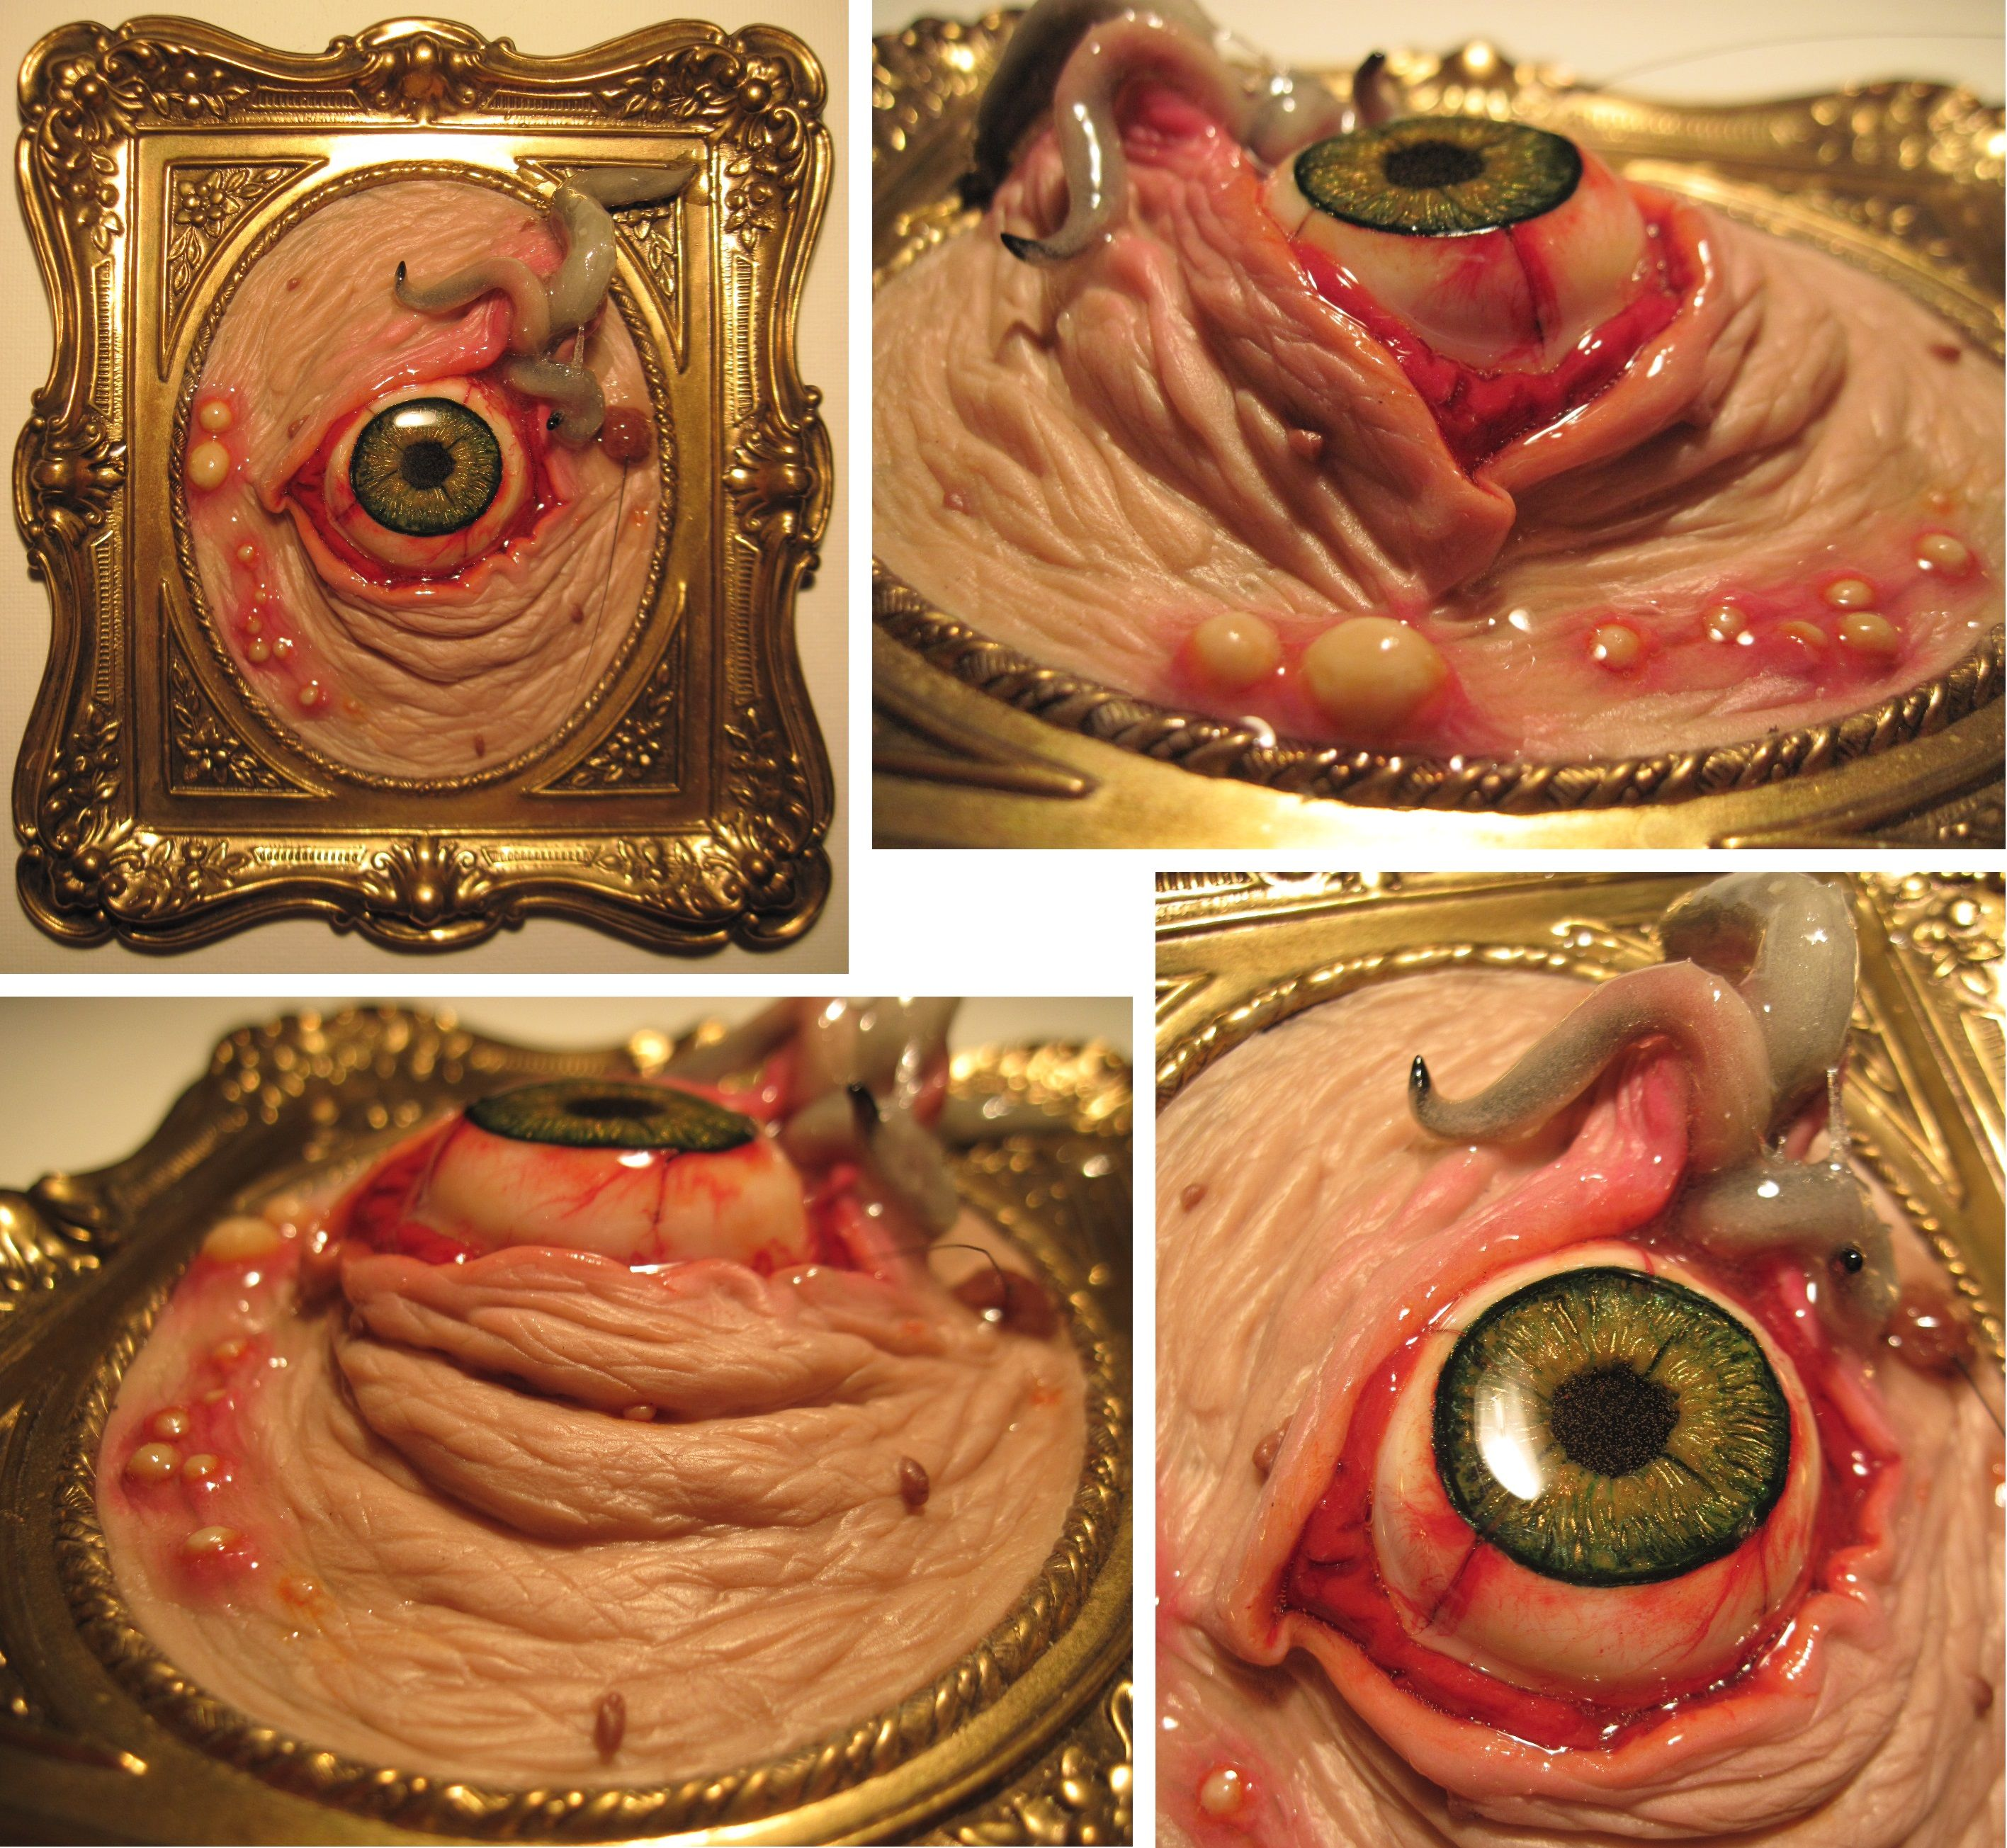 Infected Skin Tag Sculpture By Jody Elizabeth And